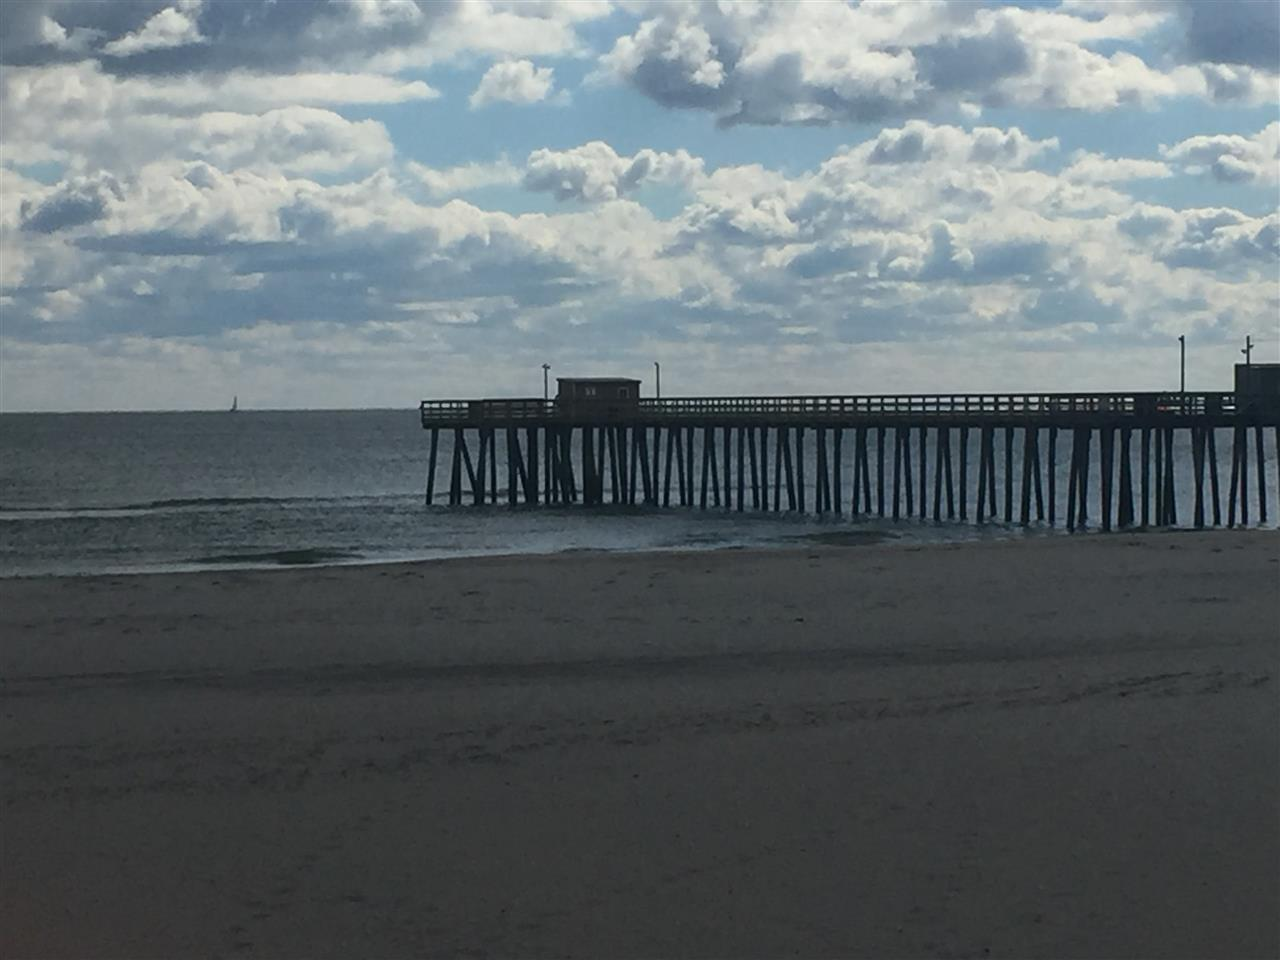 Avalon, NJ just expanded the Fishing Pier out 50 feet!  It was a sight to behold that changed the landscape forever.  Fishers have more inventory, and the surfers are learning to steer clear on an excellent surfing beach at 30th Street.